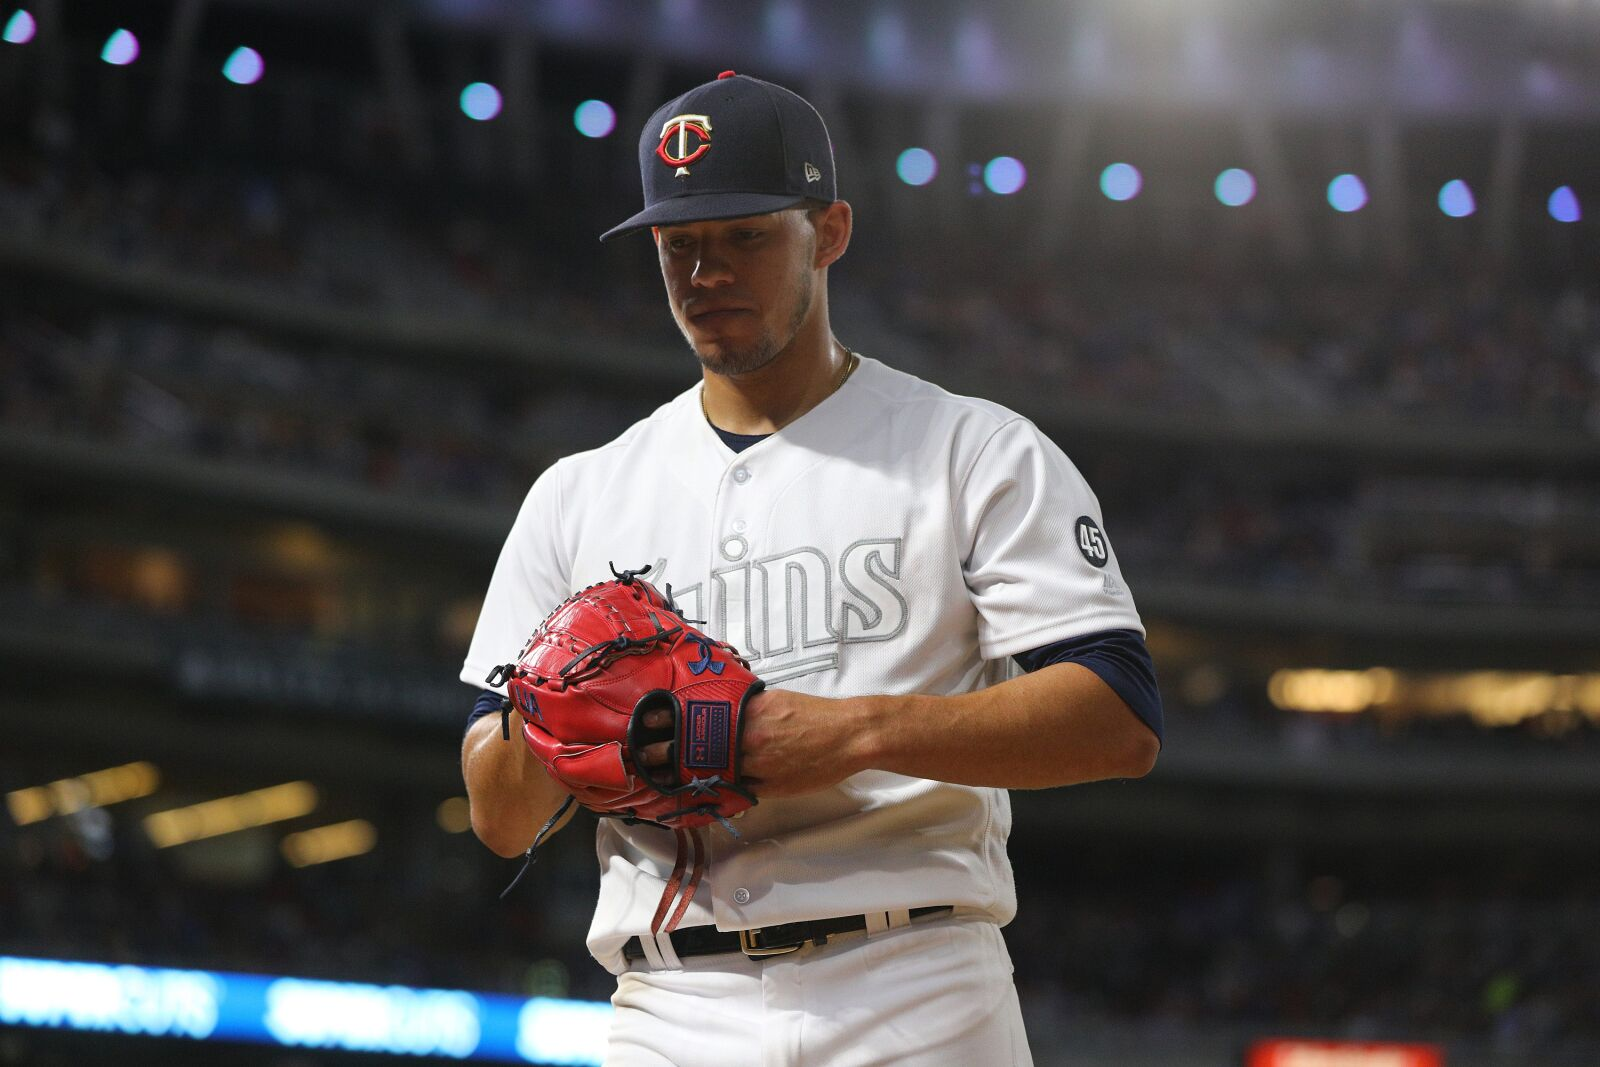 Minnesota Twins: Jose Berrios doesn't look like an ace in loss to Tigers